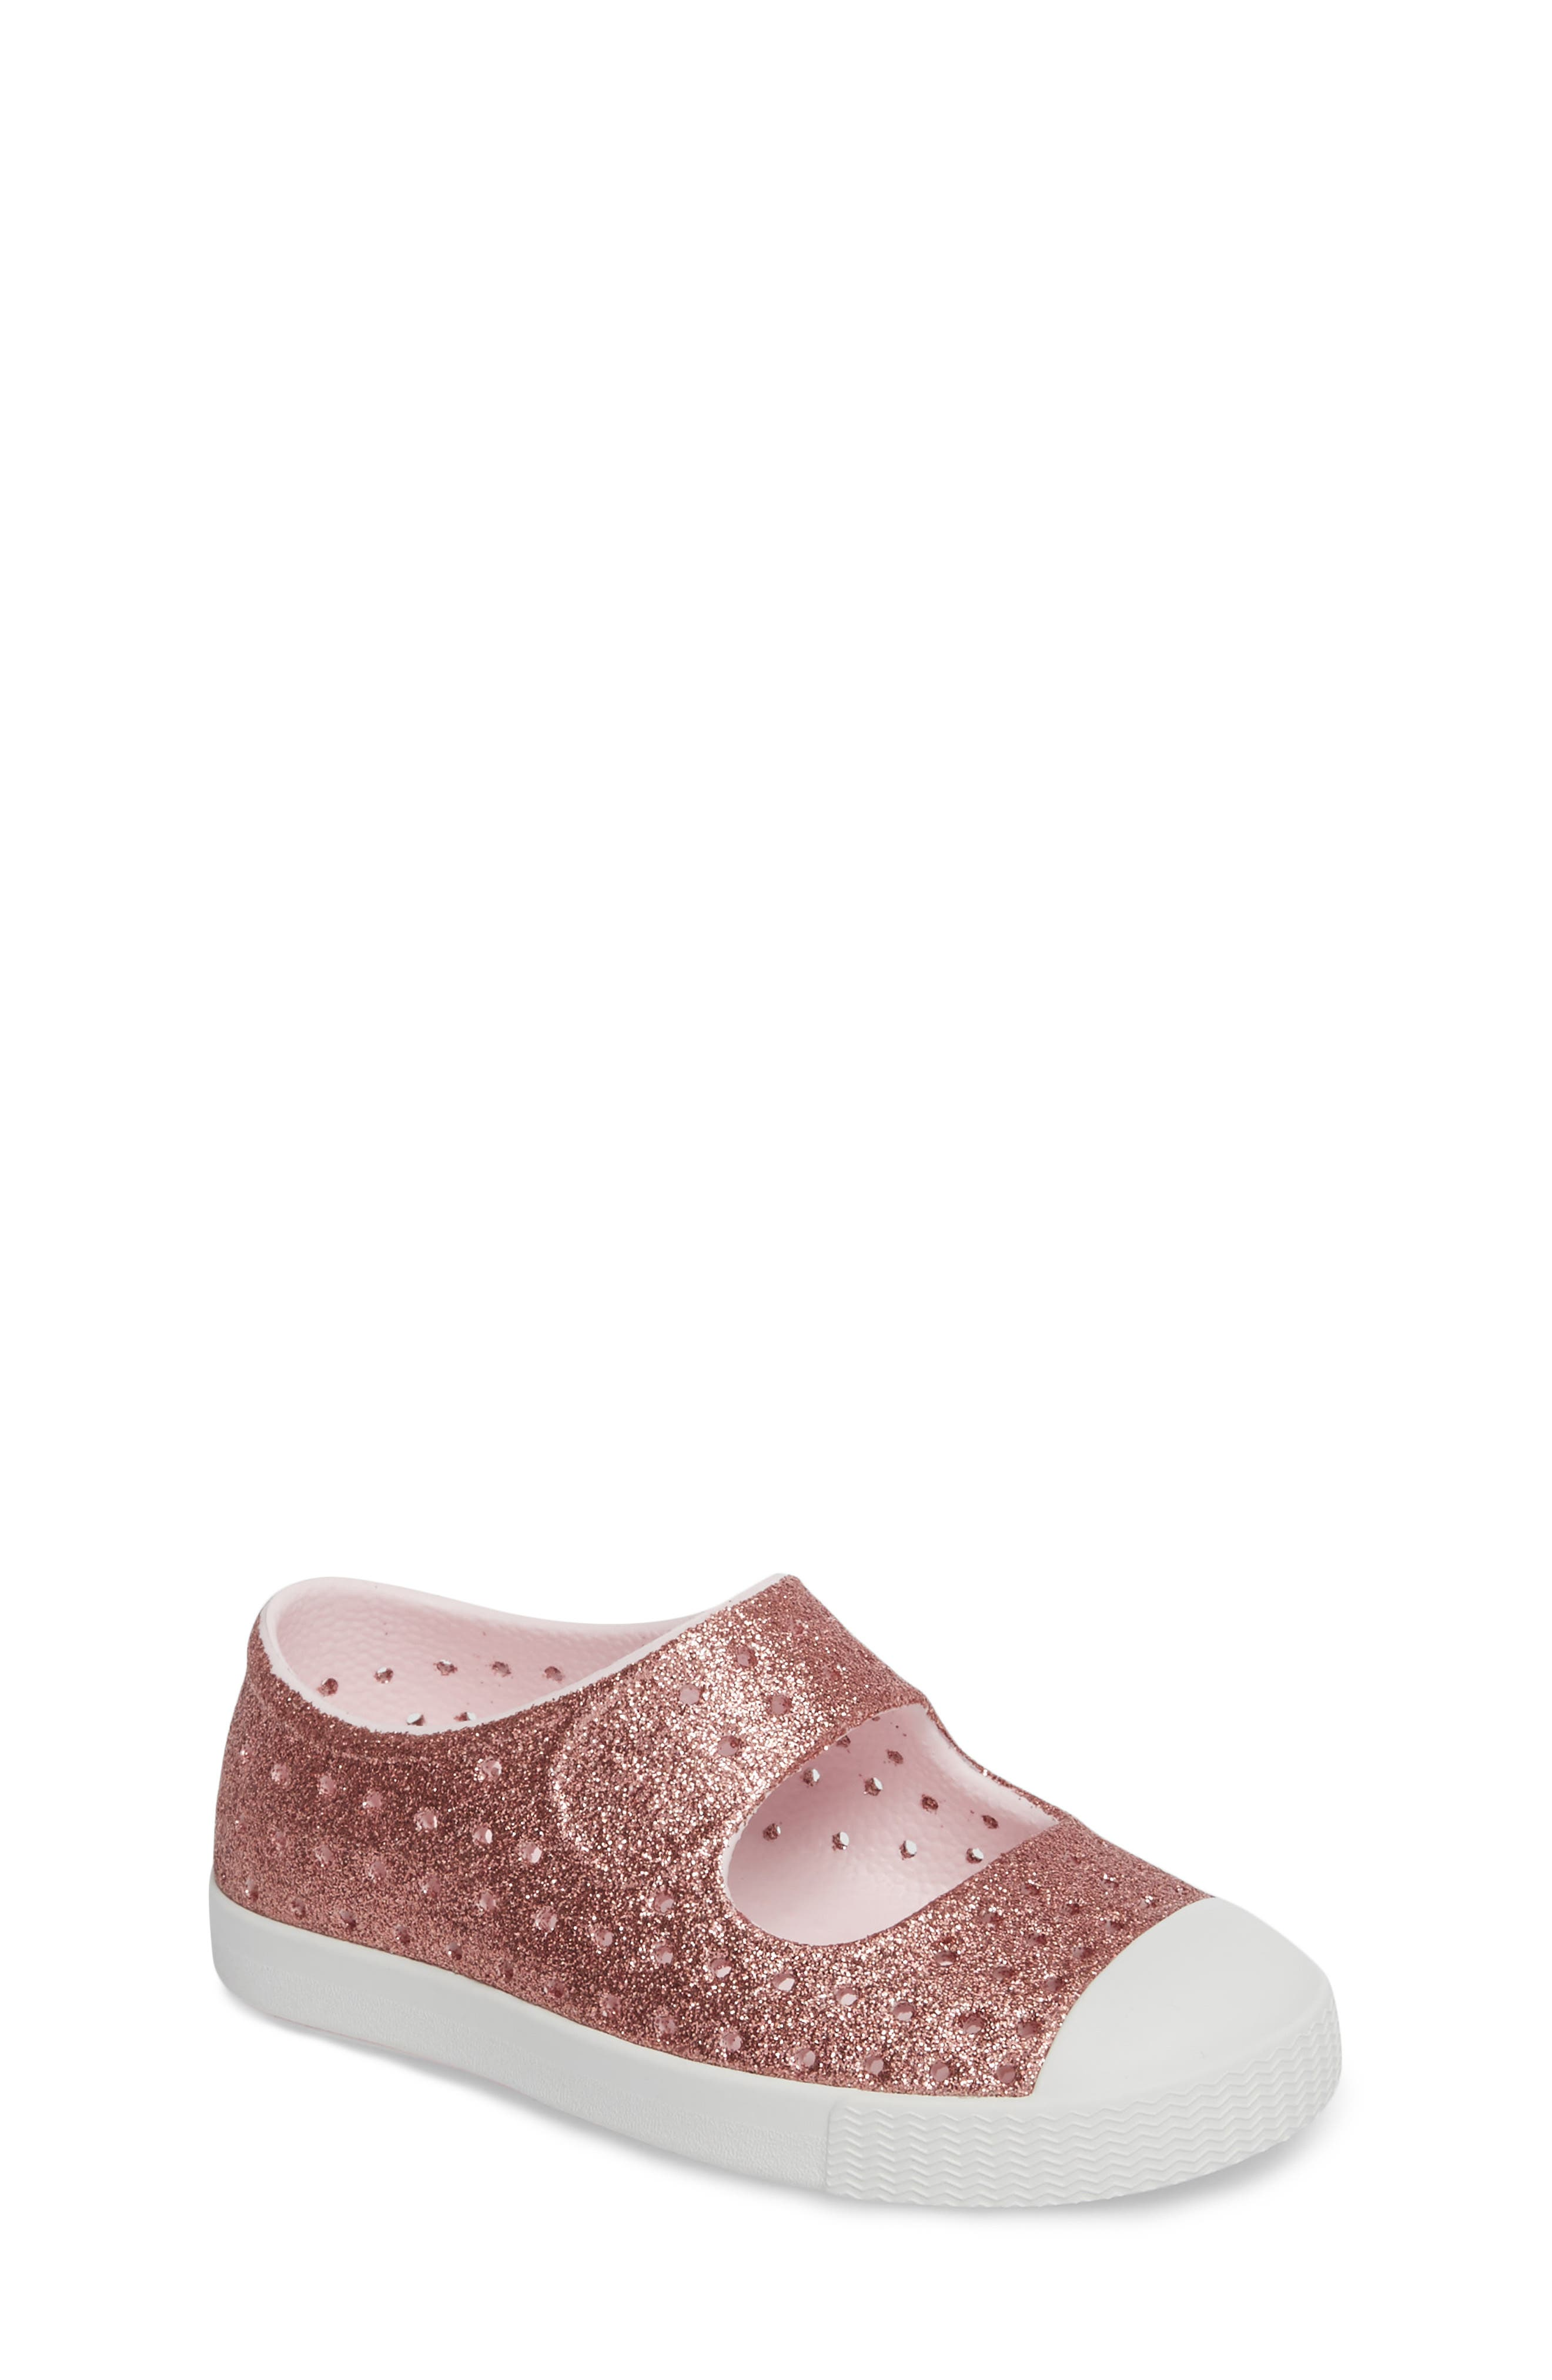 Native Shoes Juniper Bling Glitter Perforated Mary Jane (Baby, Walker, Toddler & Little Kid)